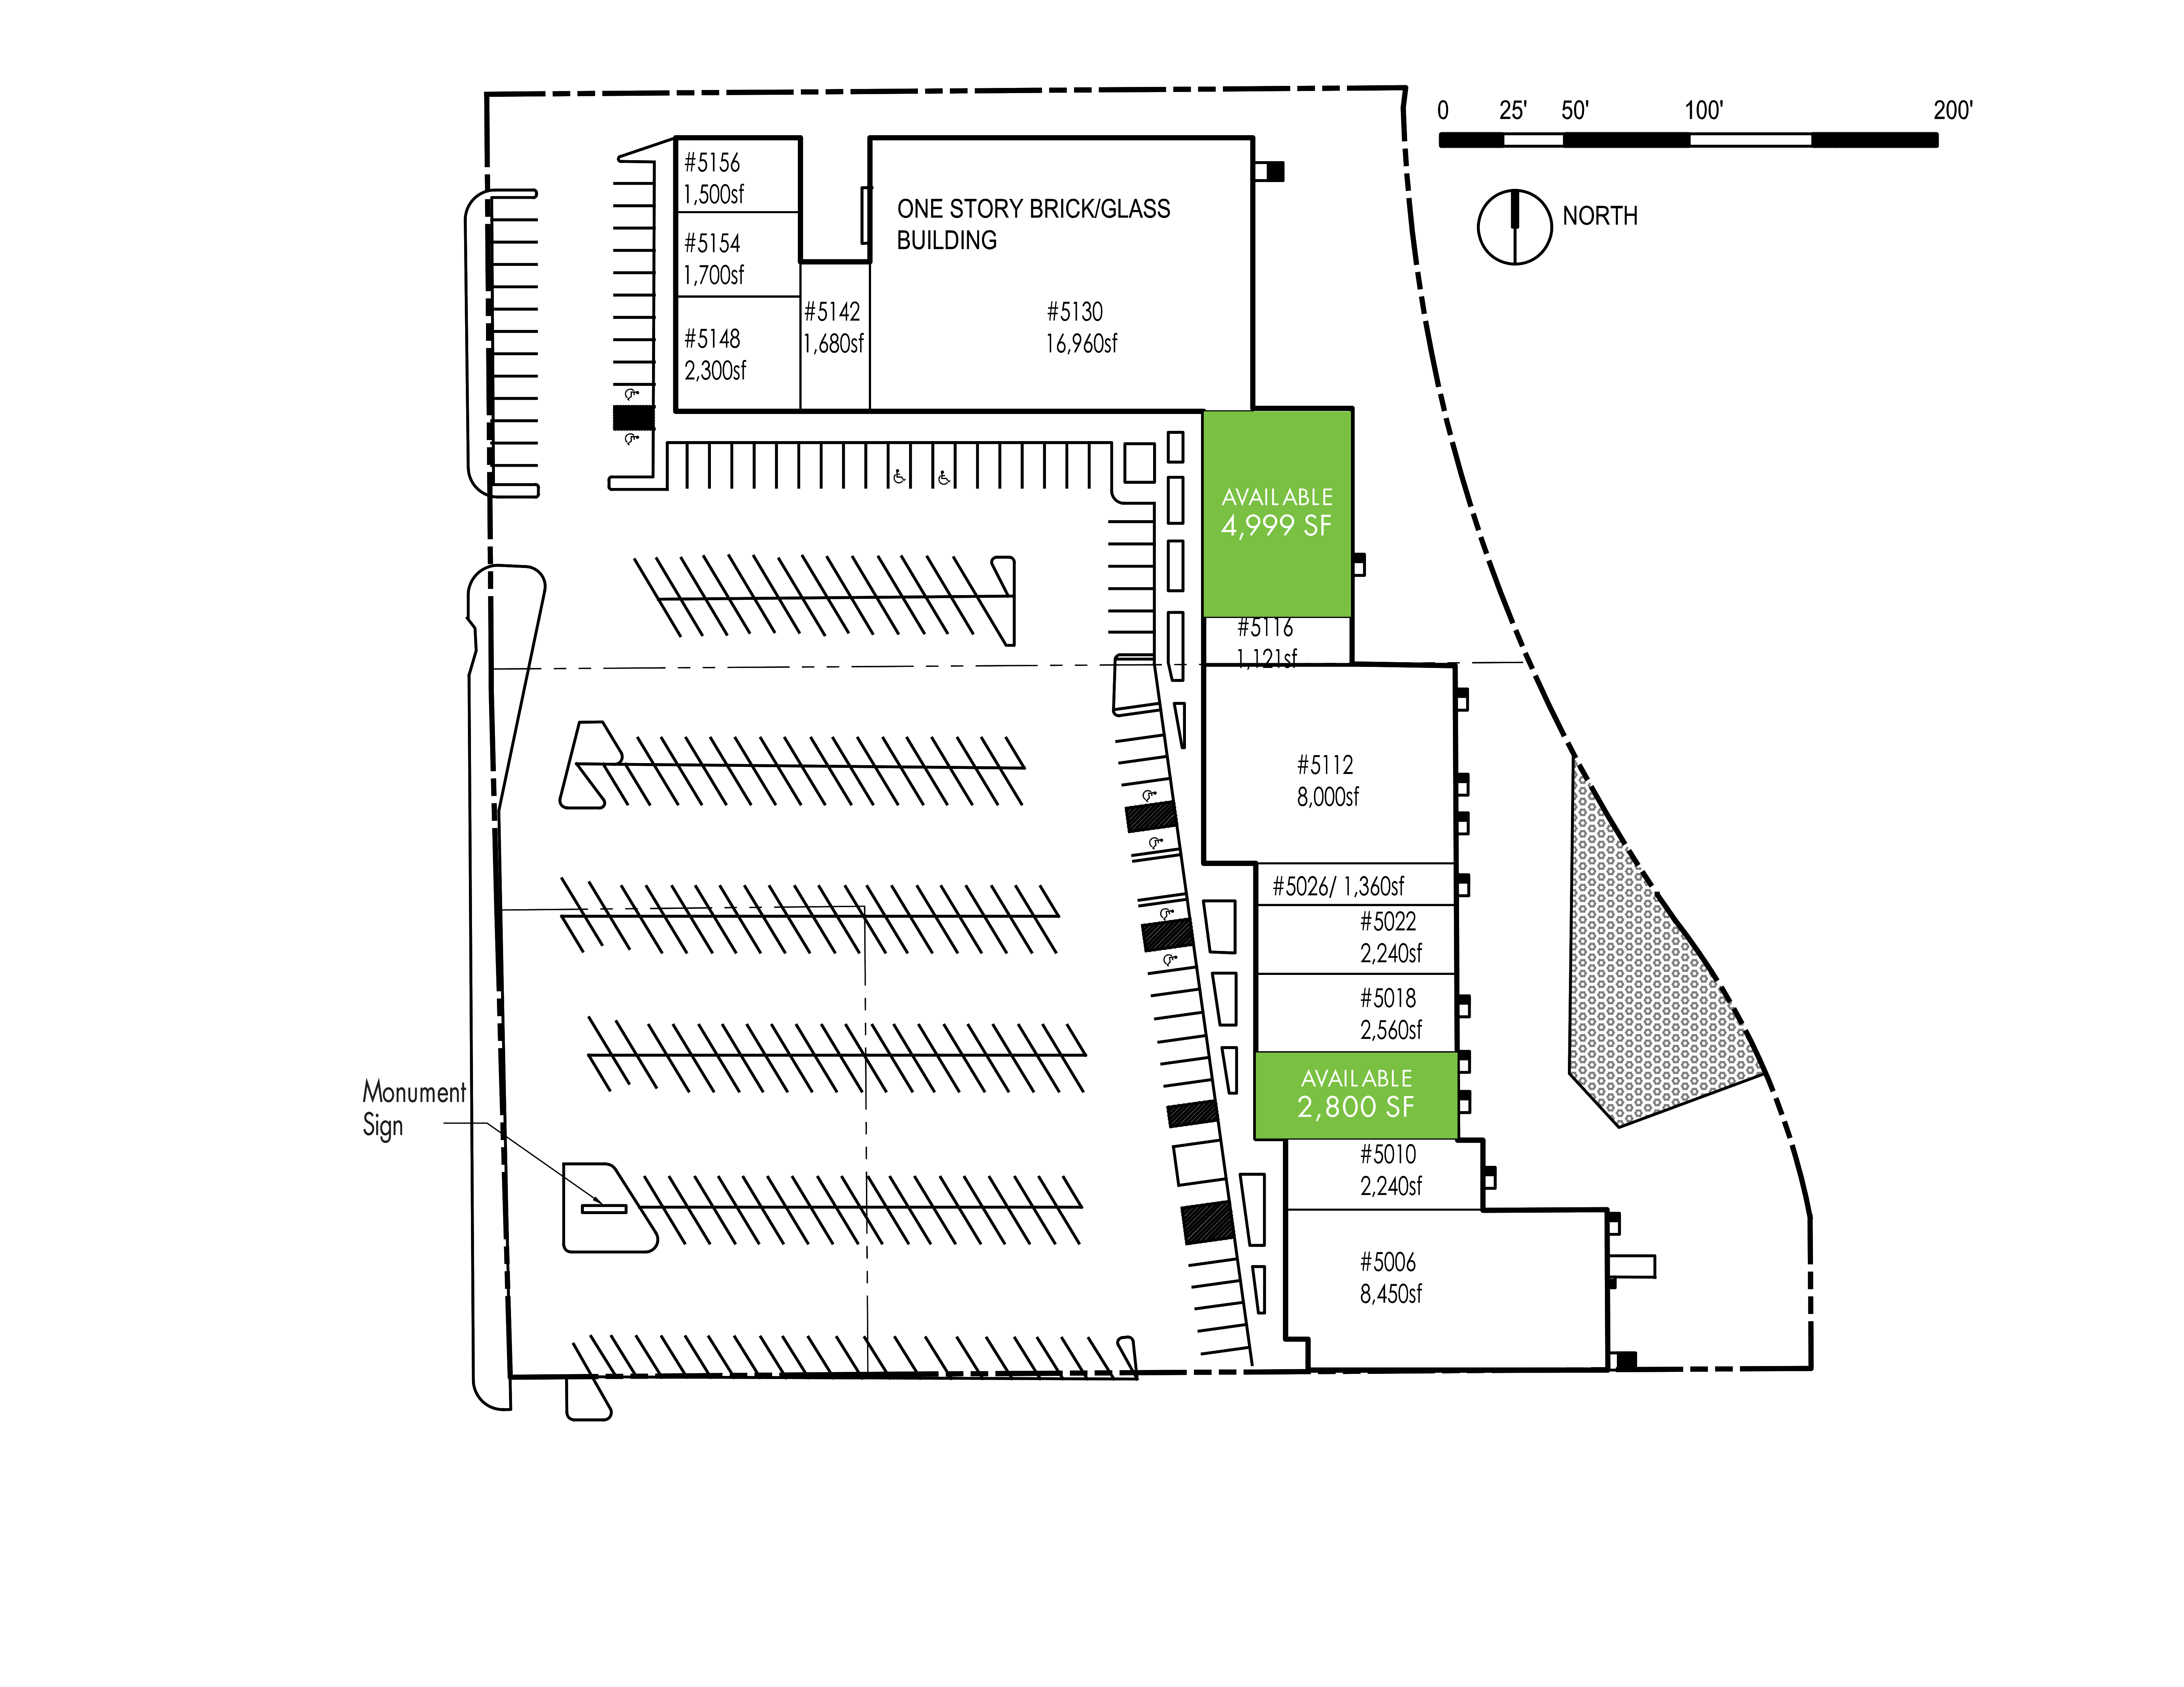 Duck Creek Shopping Center: site plan